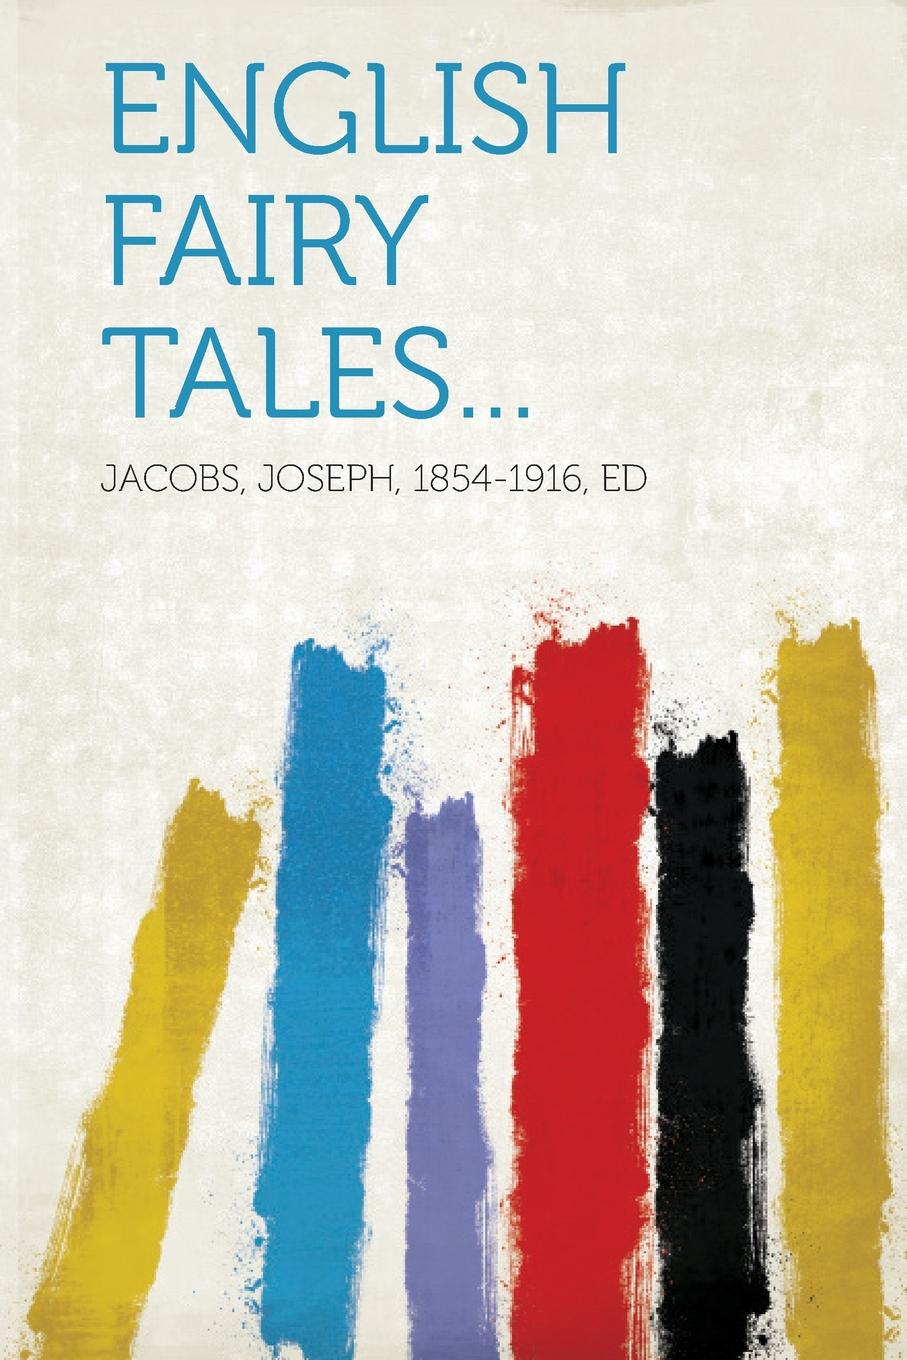 English Fairy Tales...